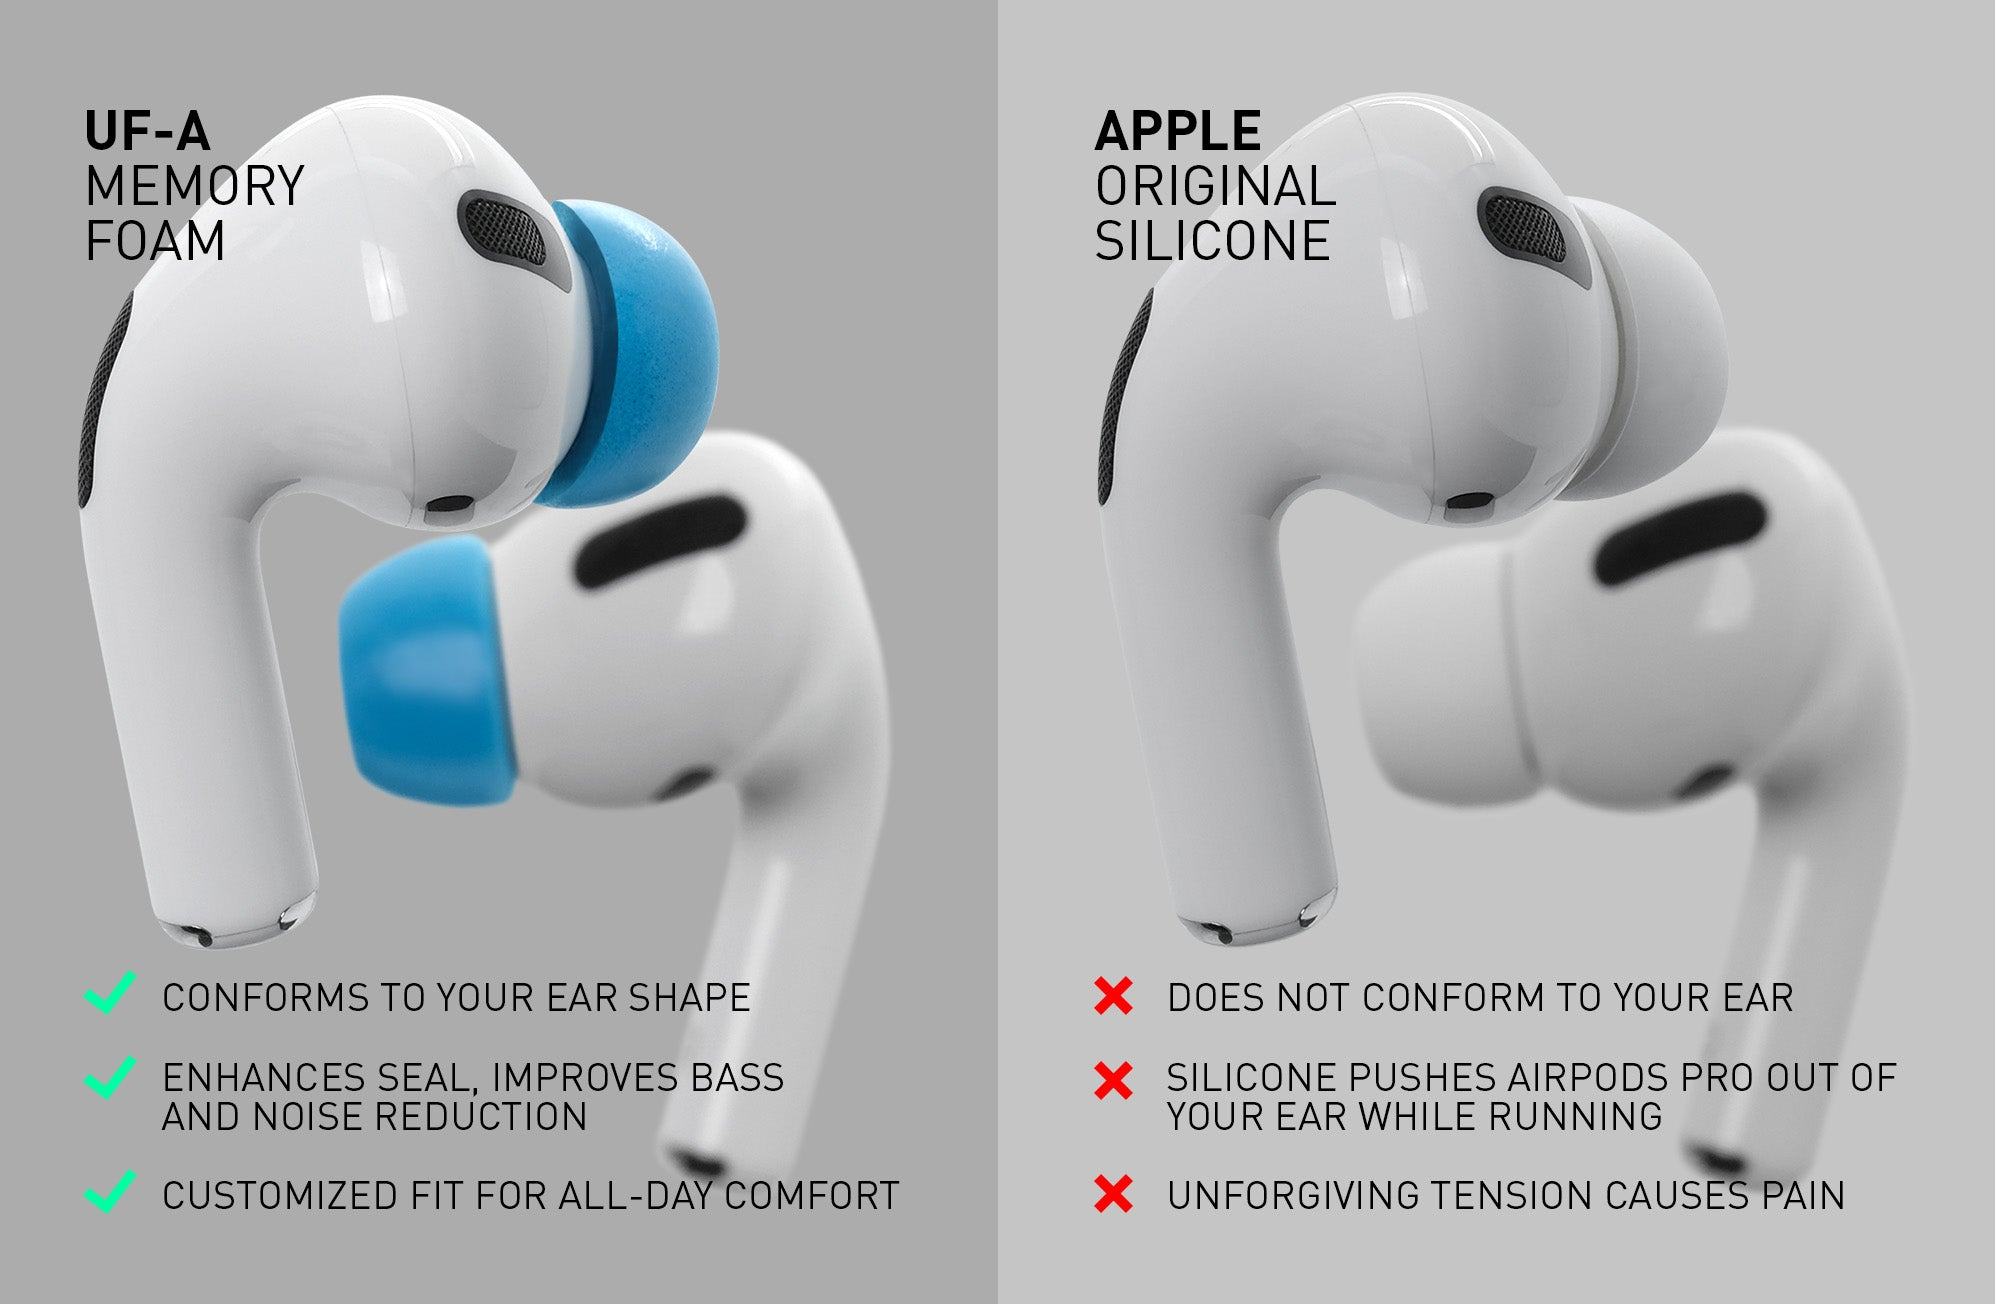 ADV. Eartune Fidelity UF-A AirPods Pro Memory Foam Ear Tips Comparison